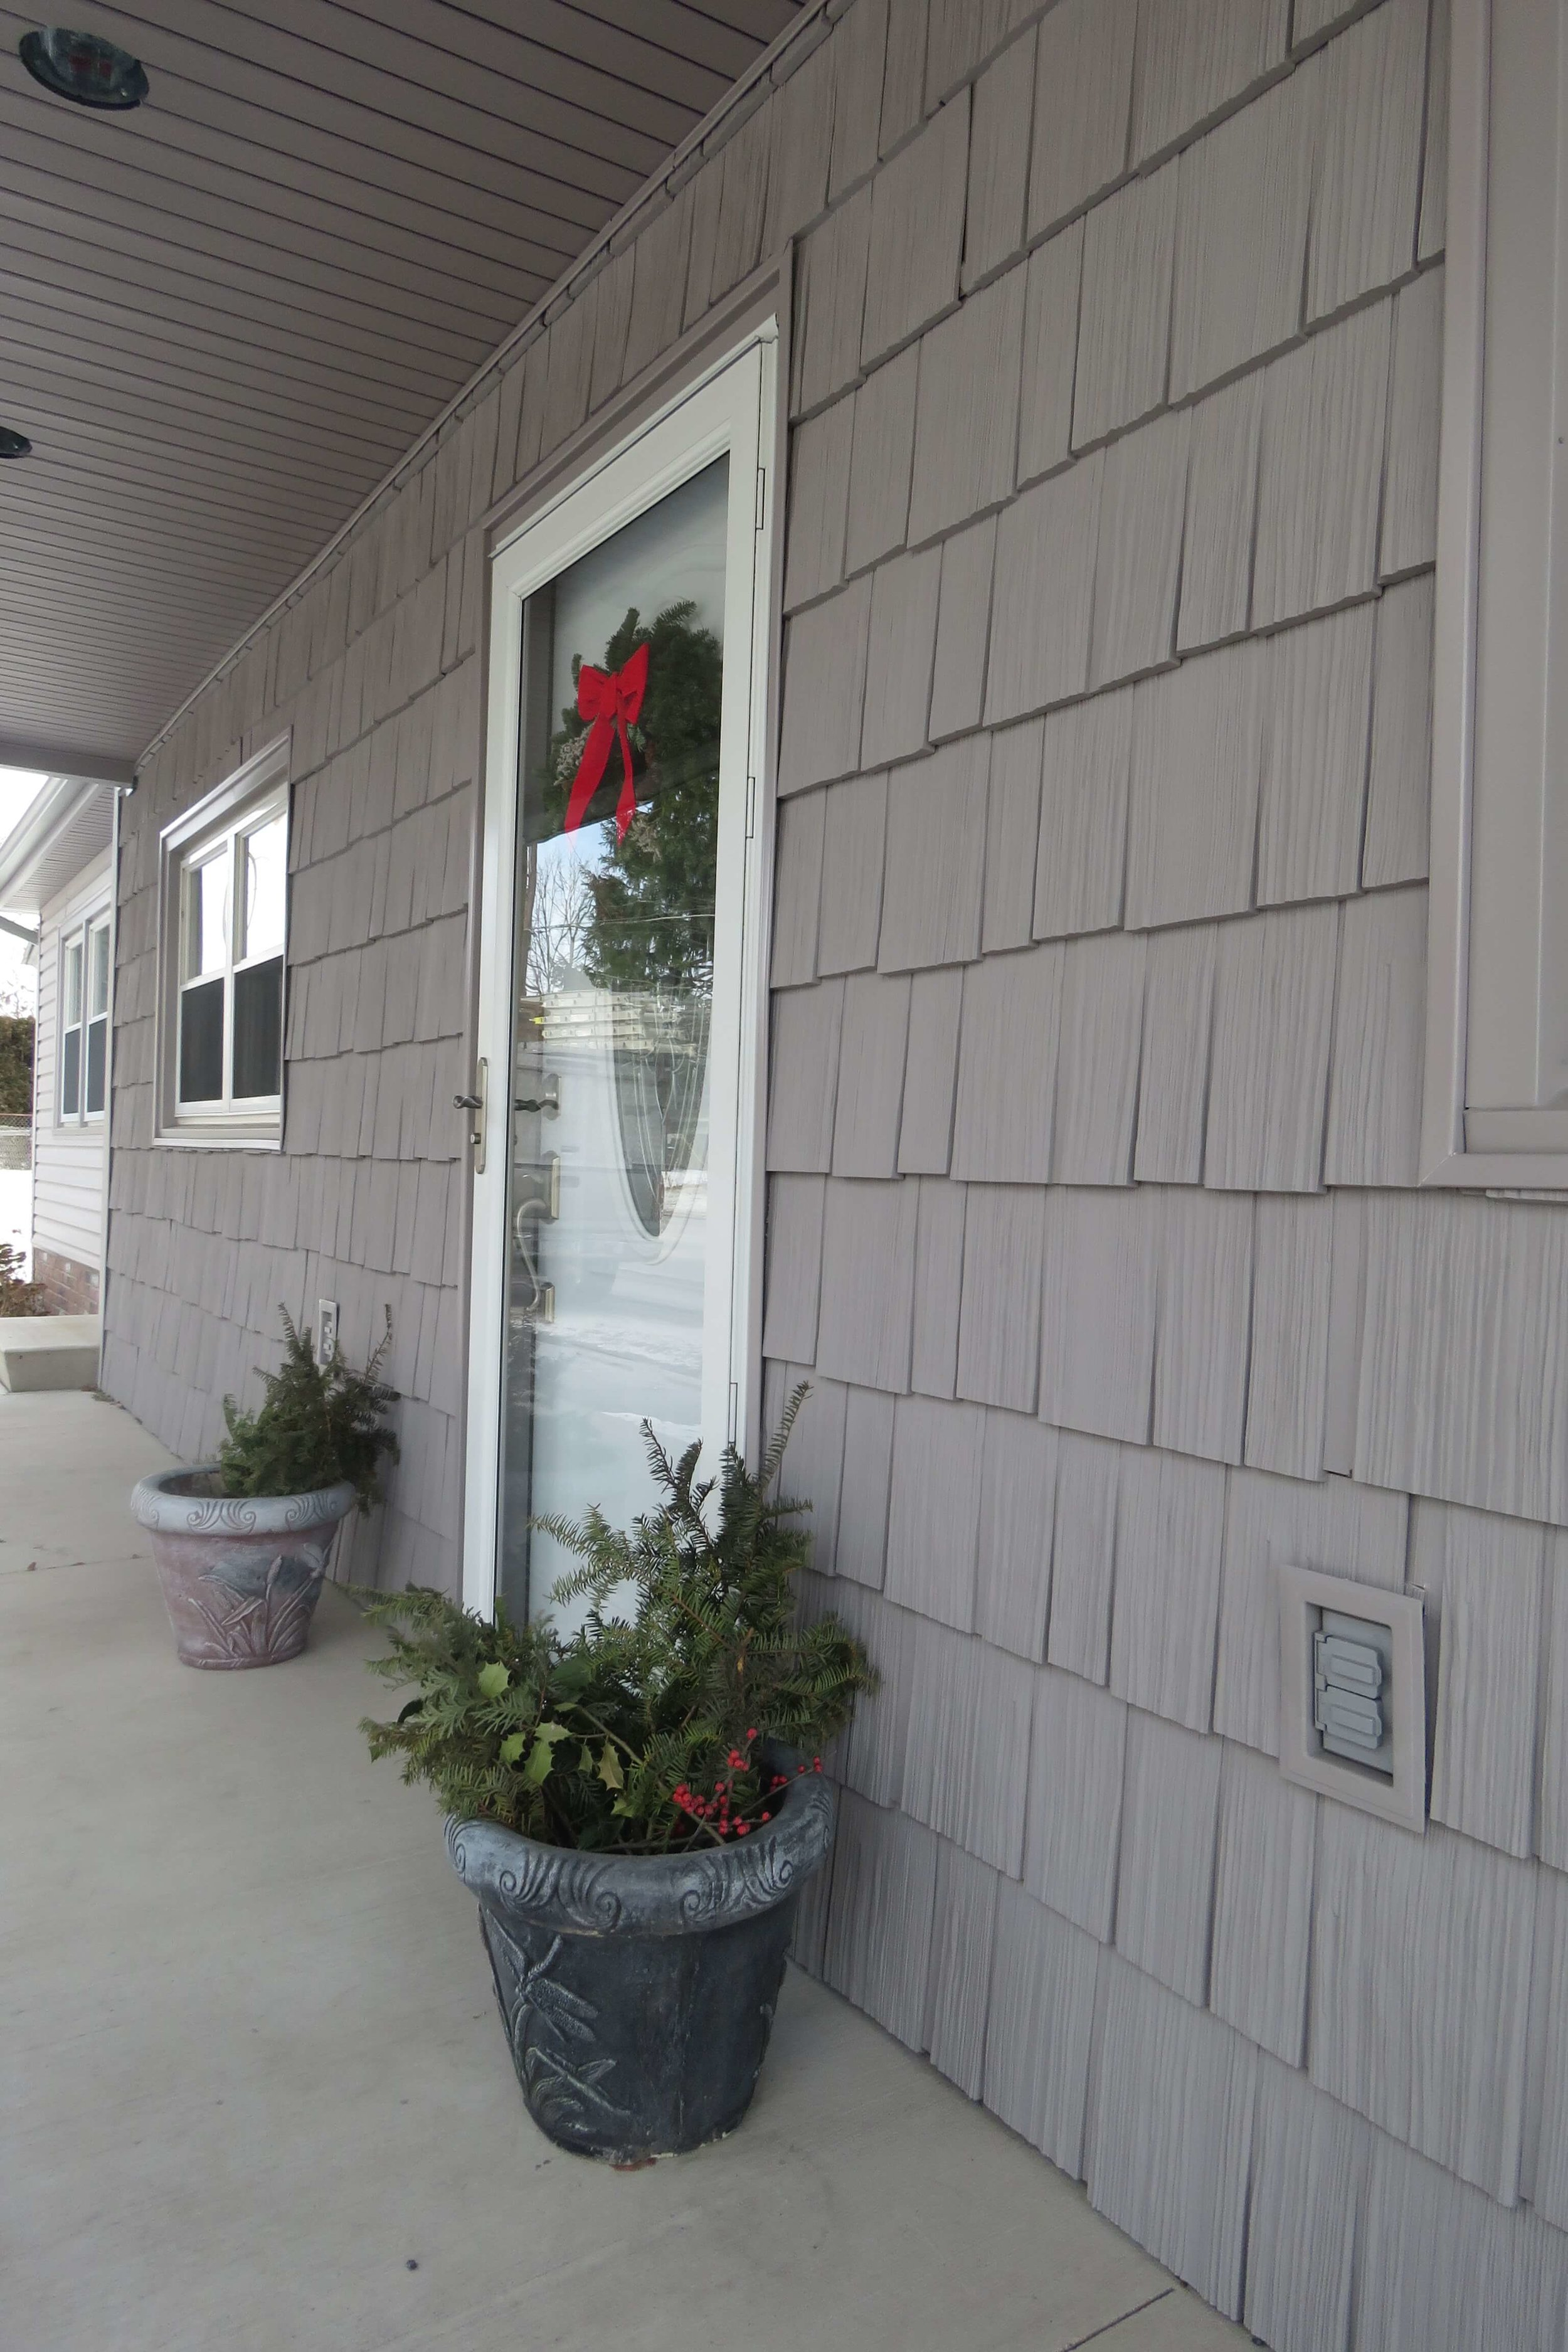 Siding Installation in Pine Grove, PA | Precise Construction II